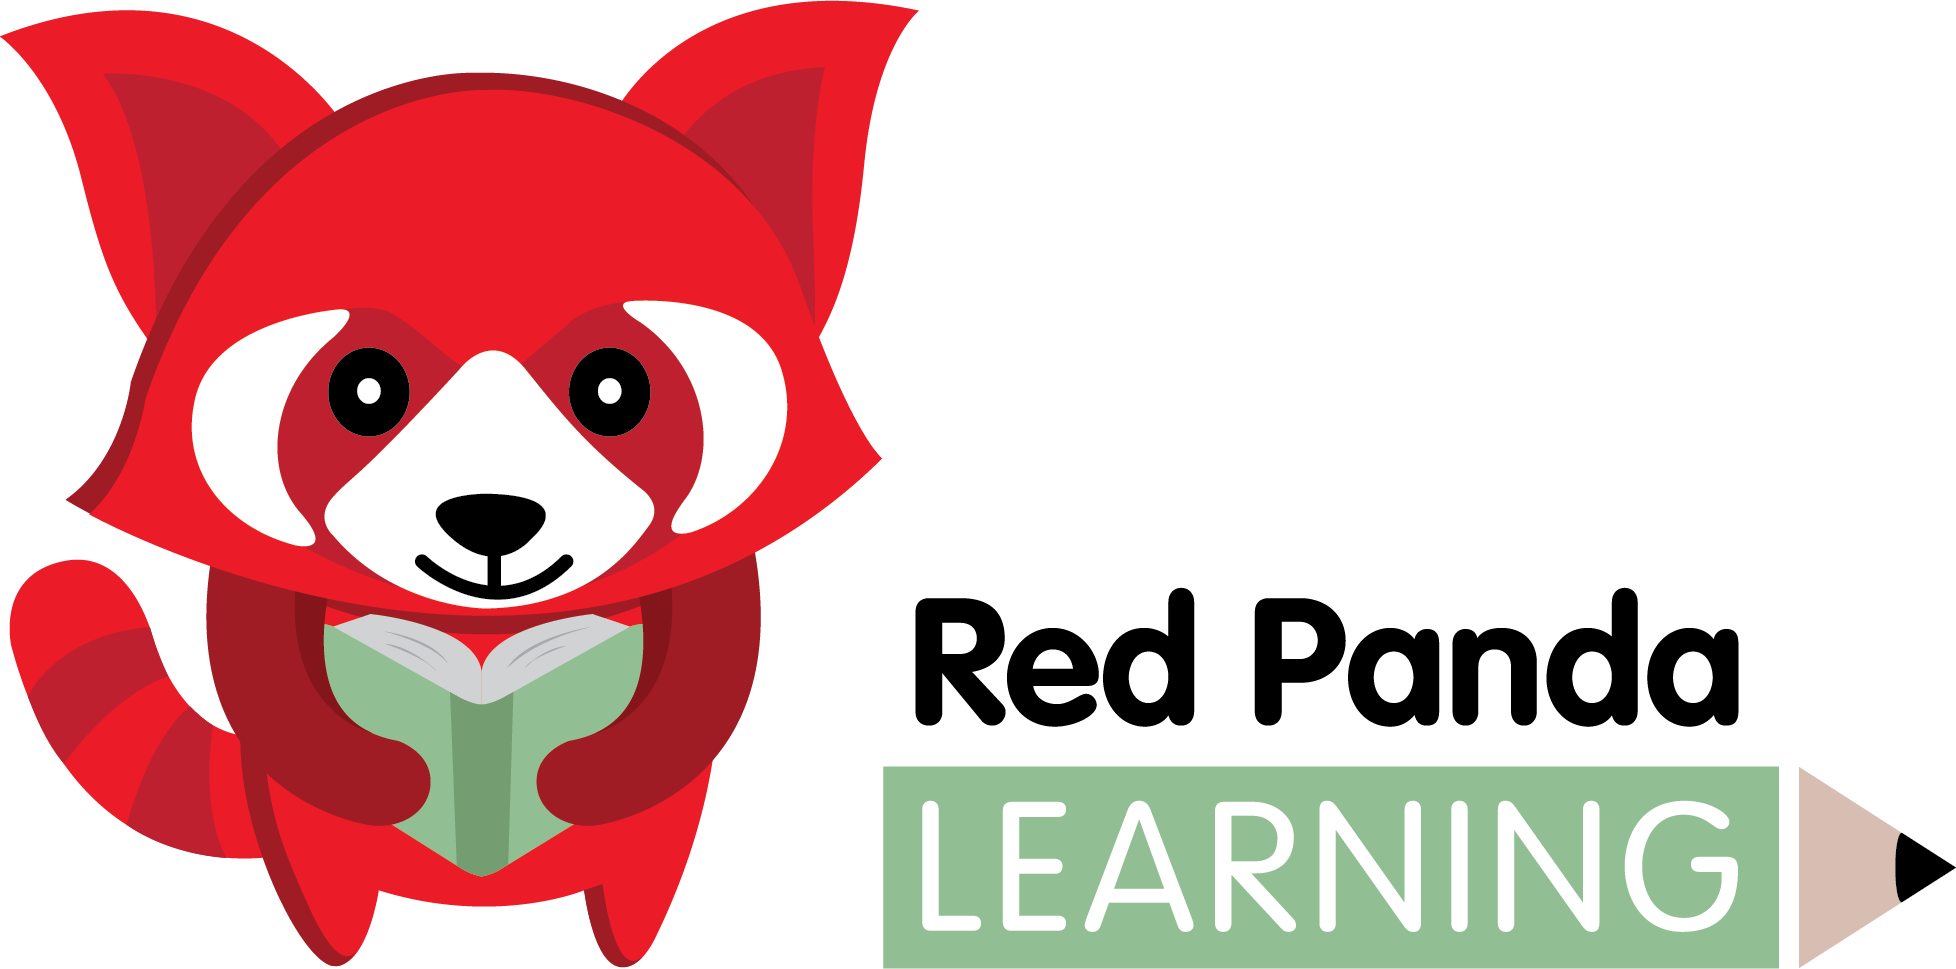 Proud clipart assessment learning. Red panda curriculum environment